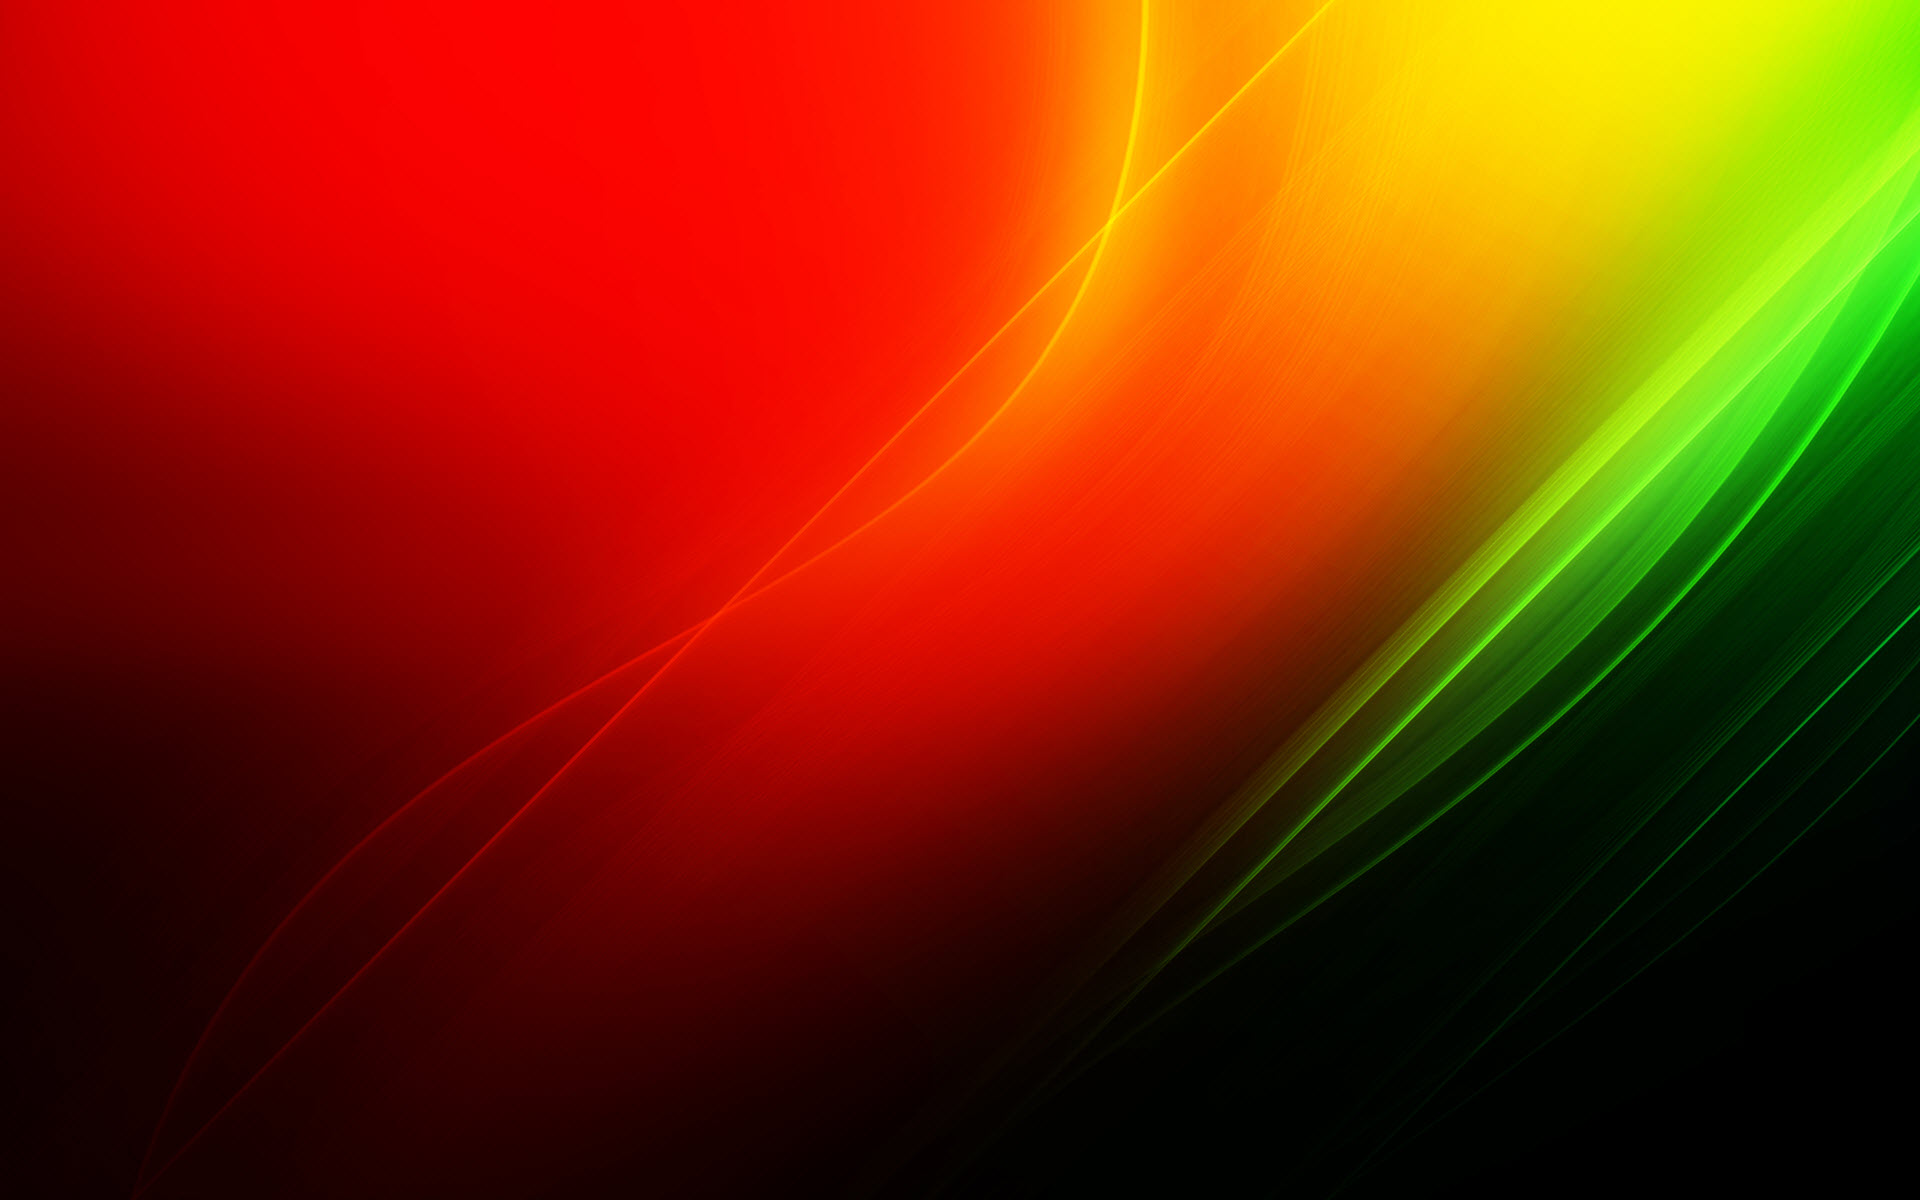 abstract-red,-yellow-and-green-colors